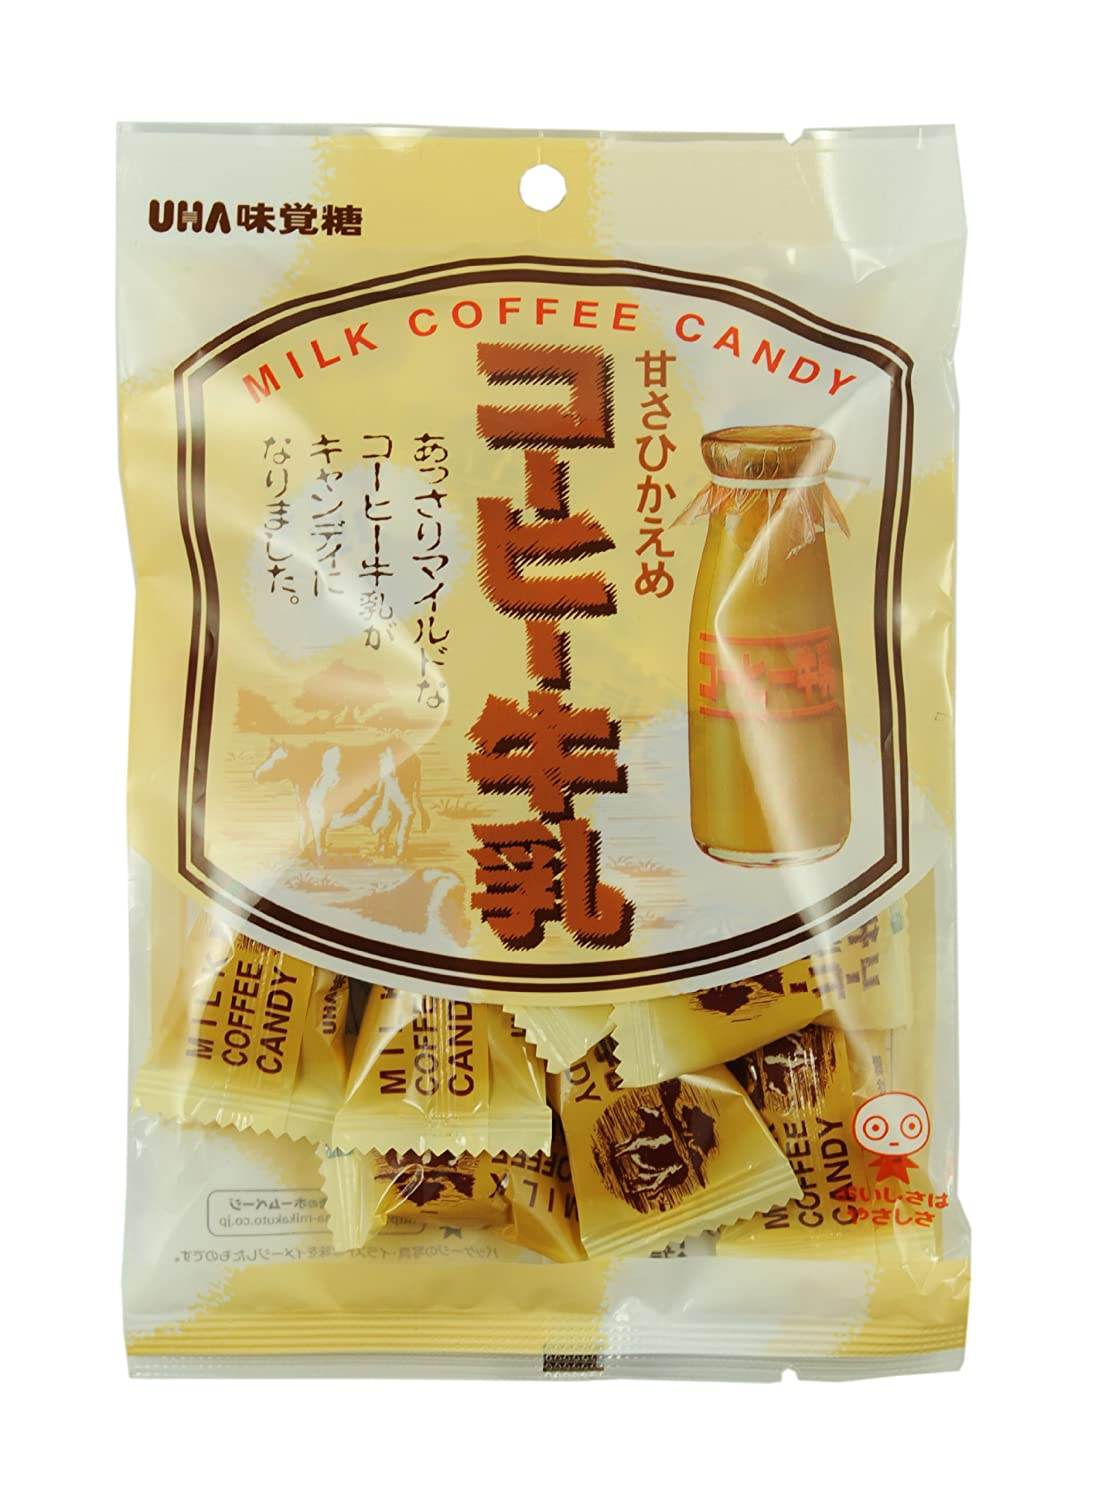 Denver Manufacturer regenerated product Mall Coffee Milk Hard Import Japanese Candy